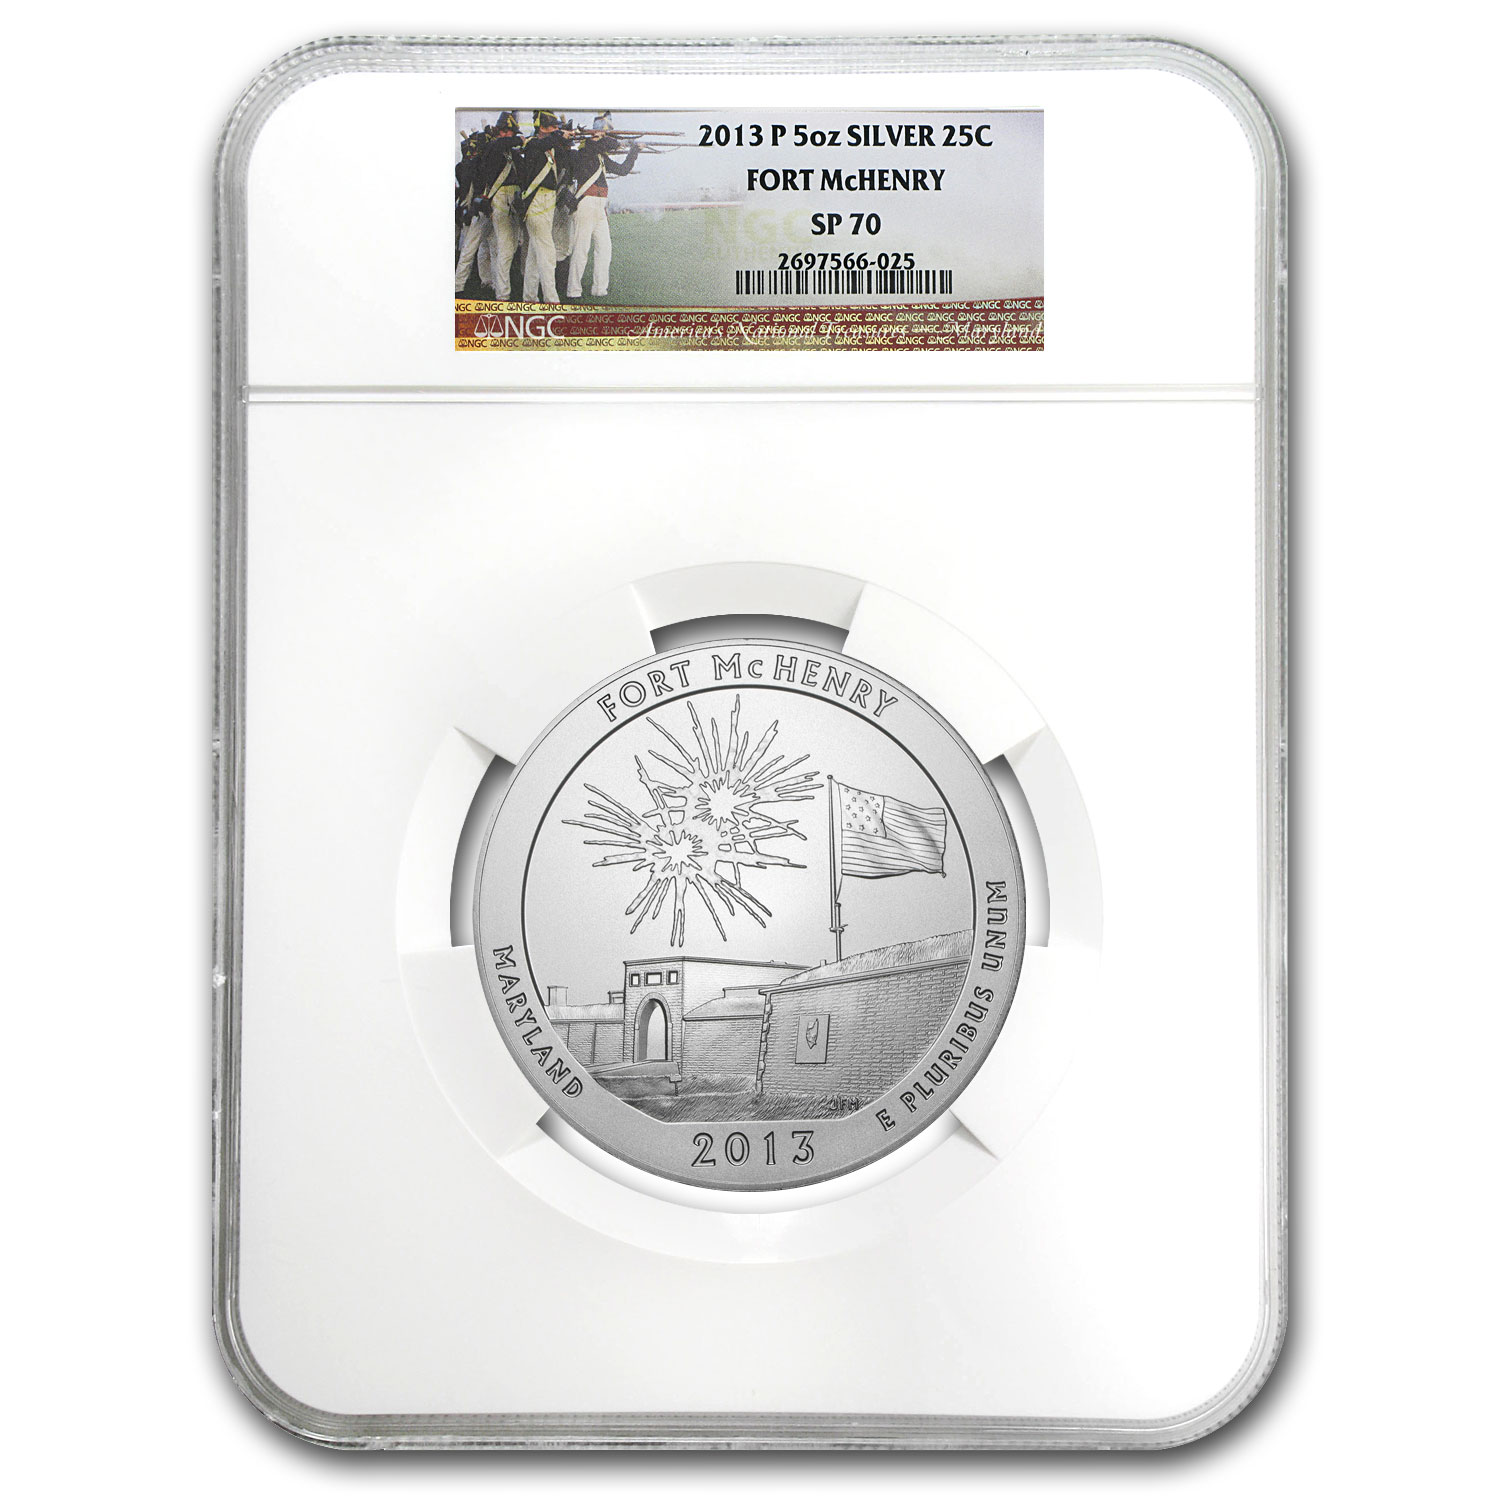 2013-P 5 oz Silver ATB Fort McHenry SP-70 NGC